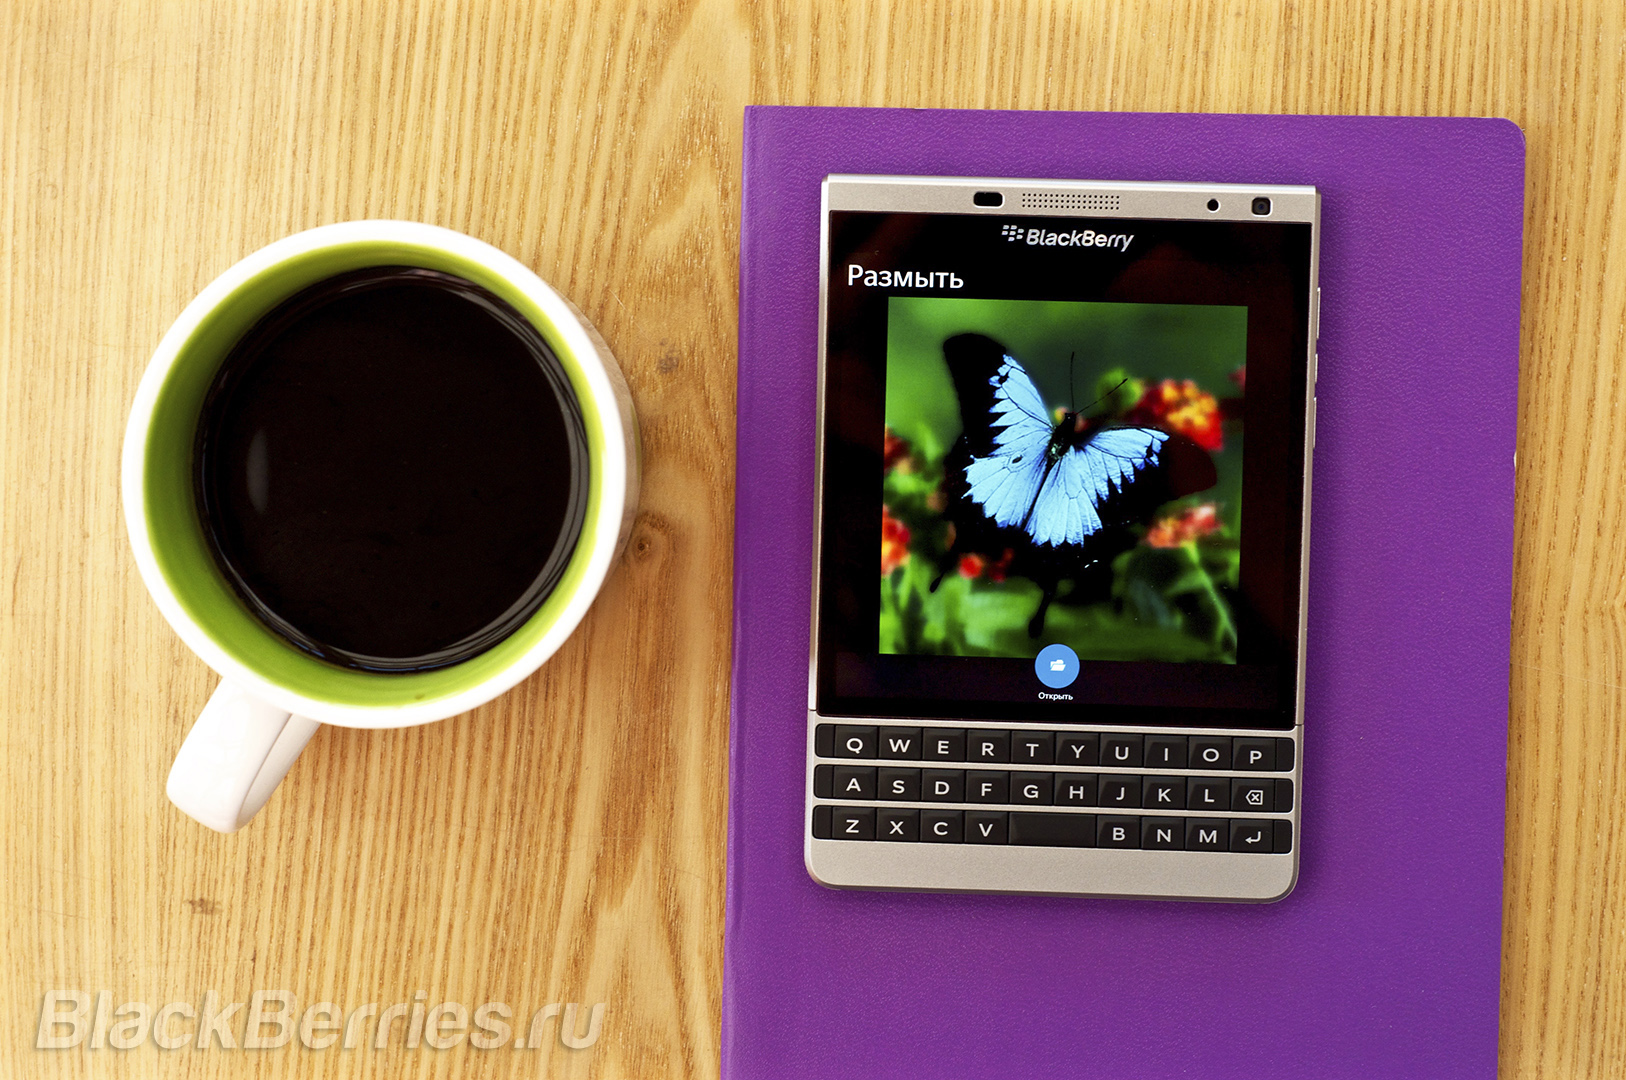 BlackBerry-Passport-Silver-Edition-Review-16